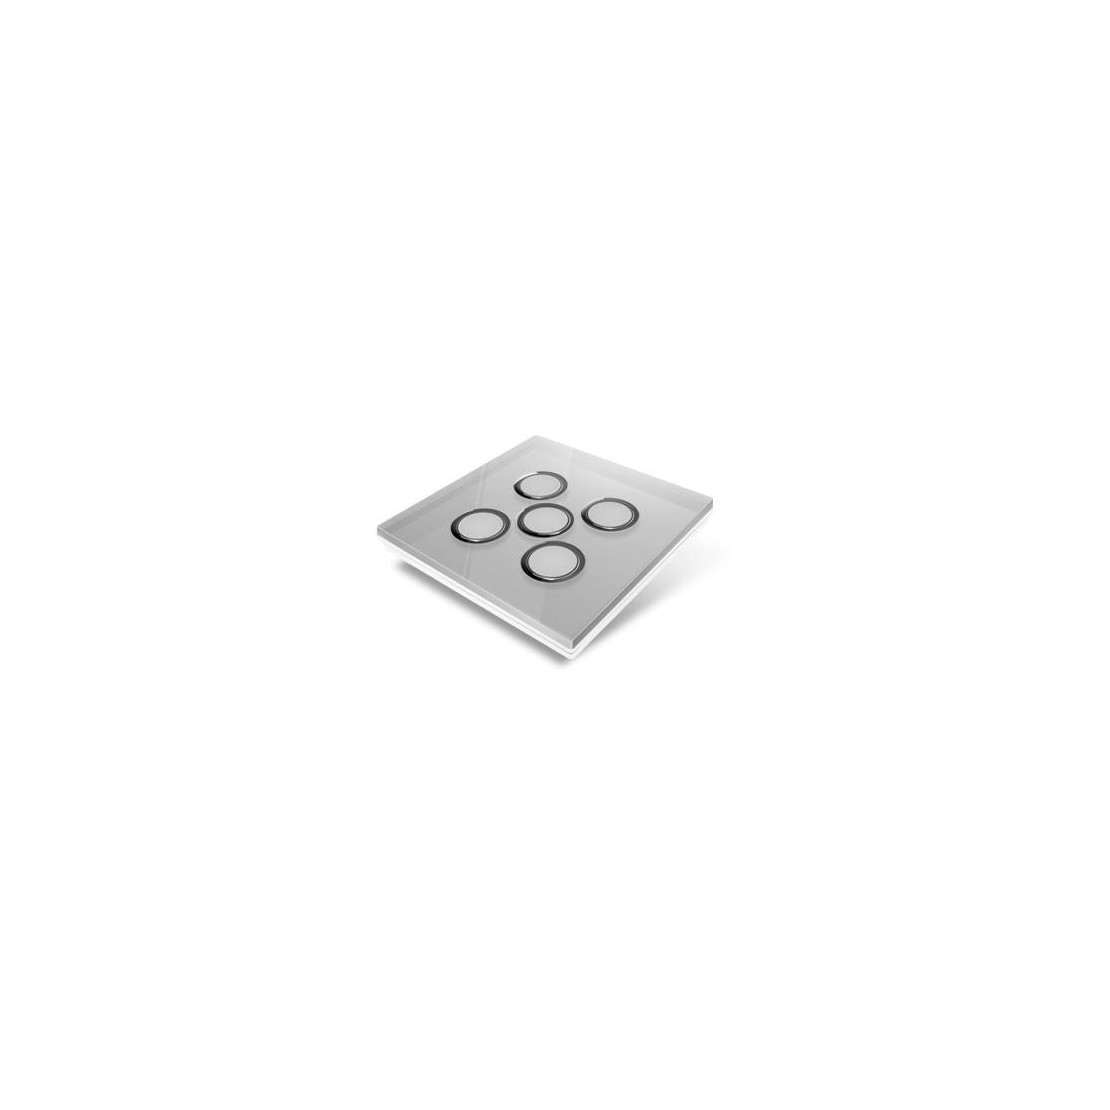 Grey crystal cover plate